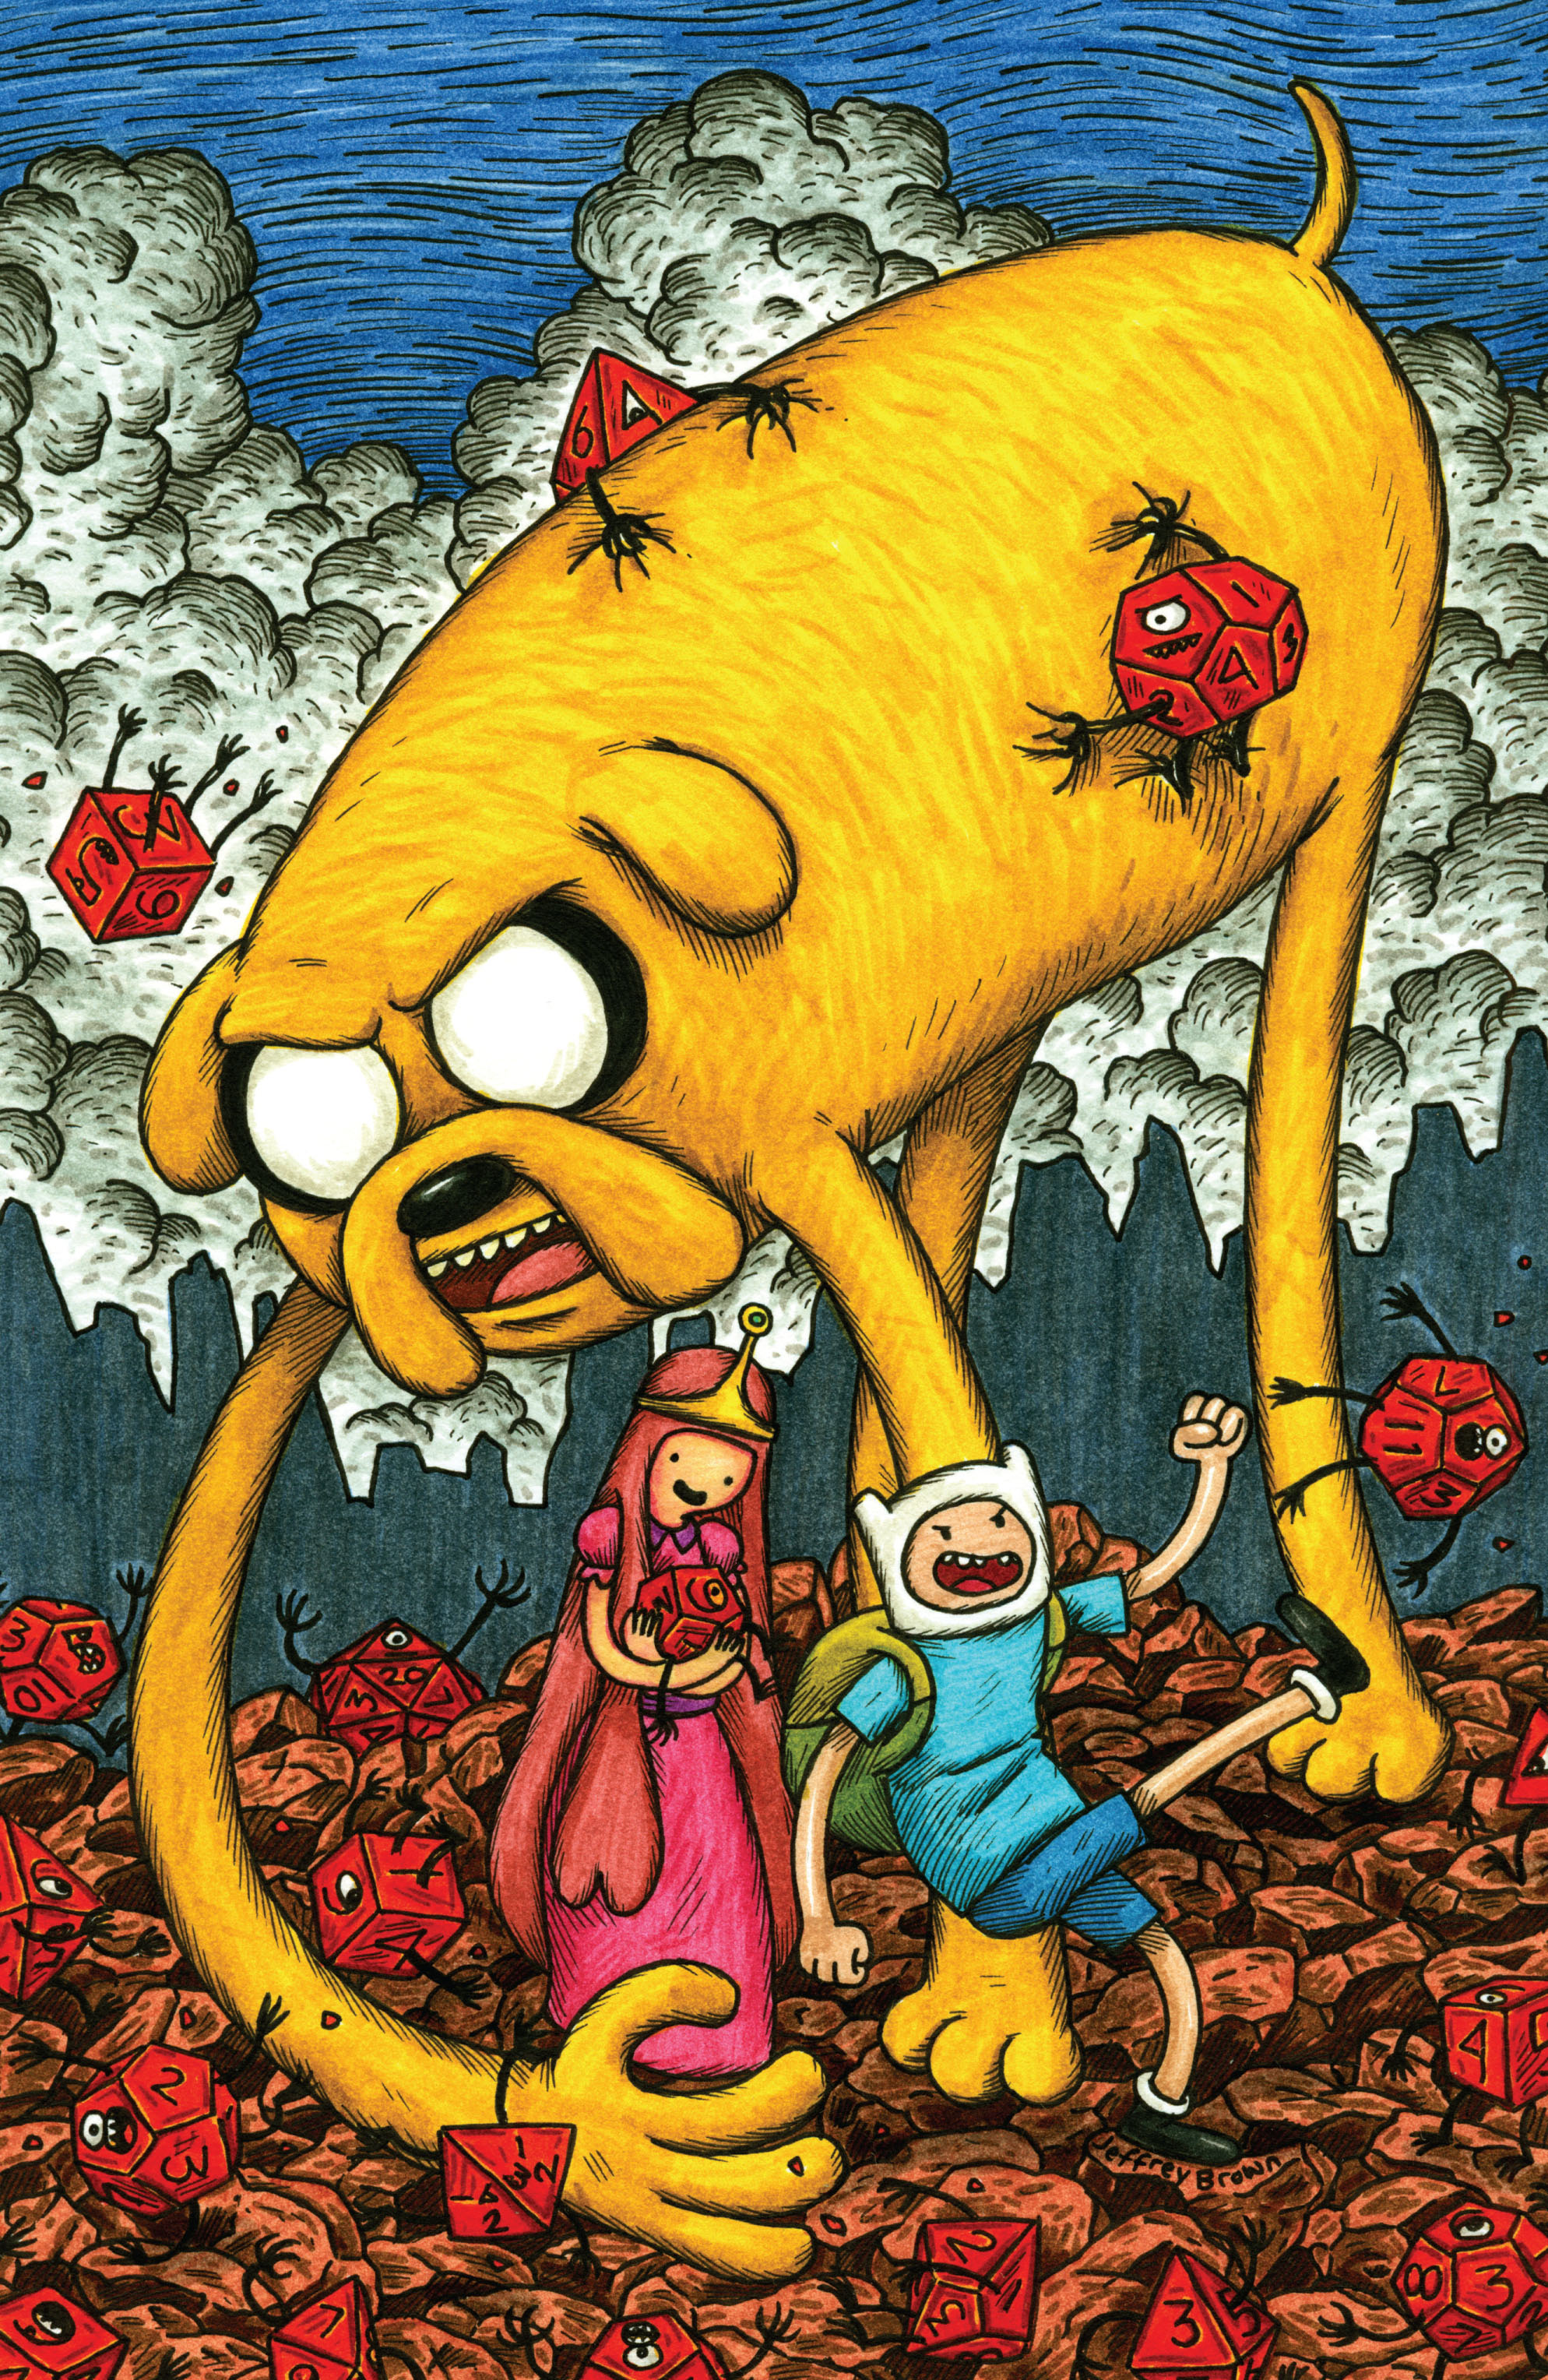 Read online Adventure Time comic -  Issue #1 - 4